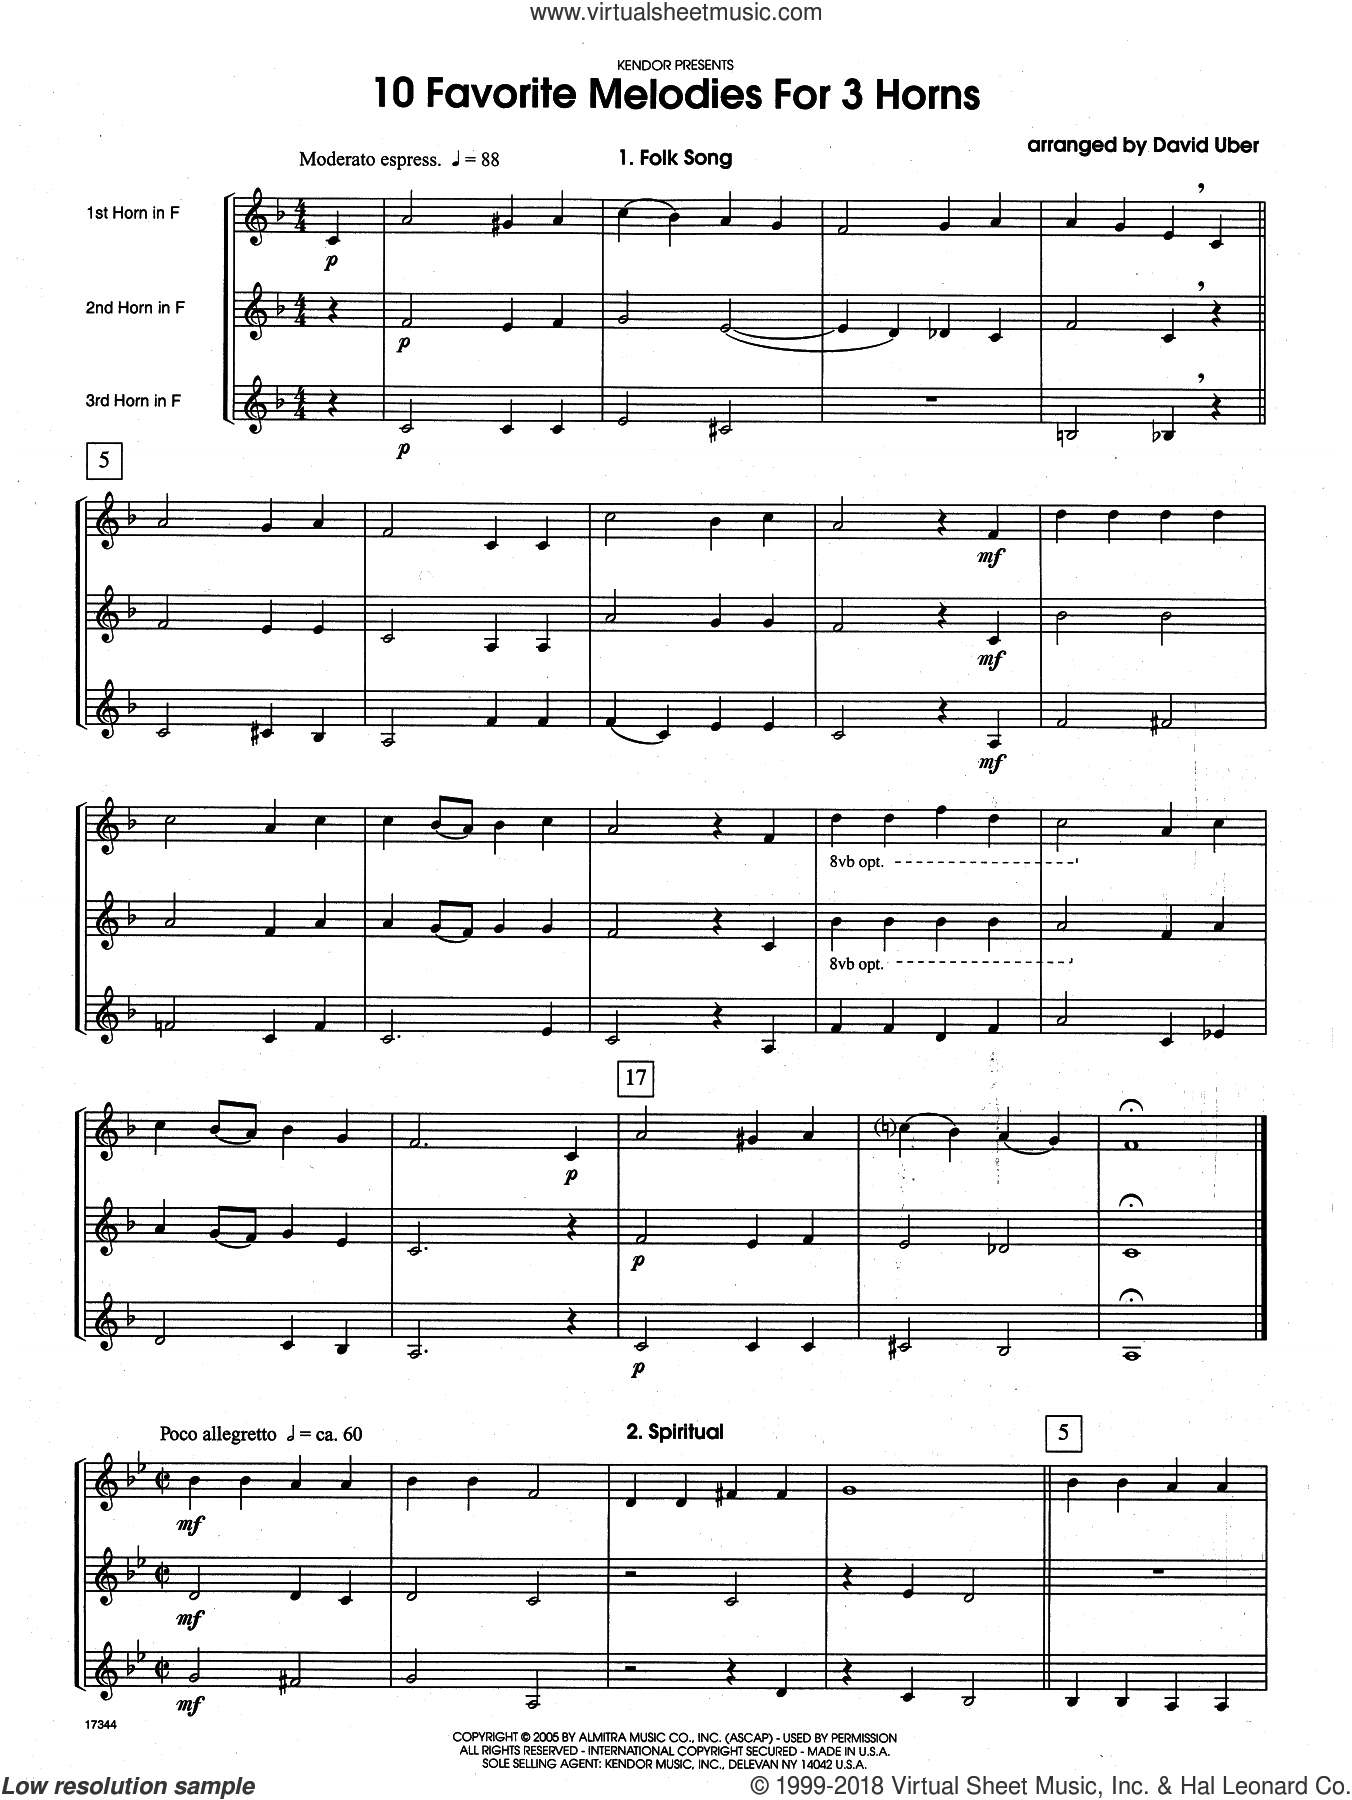 10 Favorite Melodies For 3 Horns (COMPLETE) sheet music for horn trio by David Uber, classical score, intermediate. Score Image Preview.